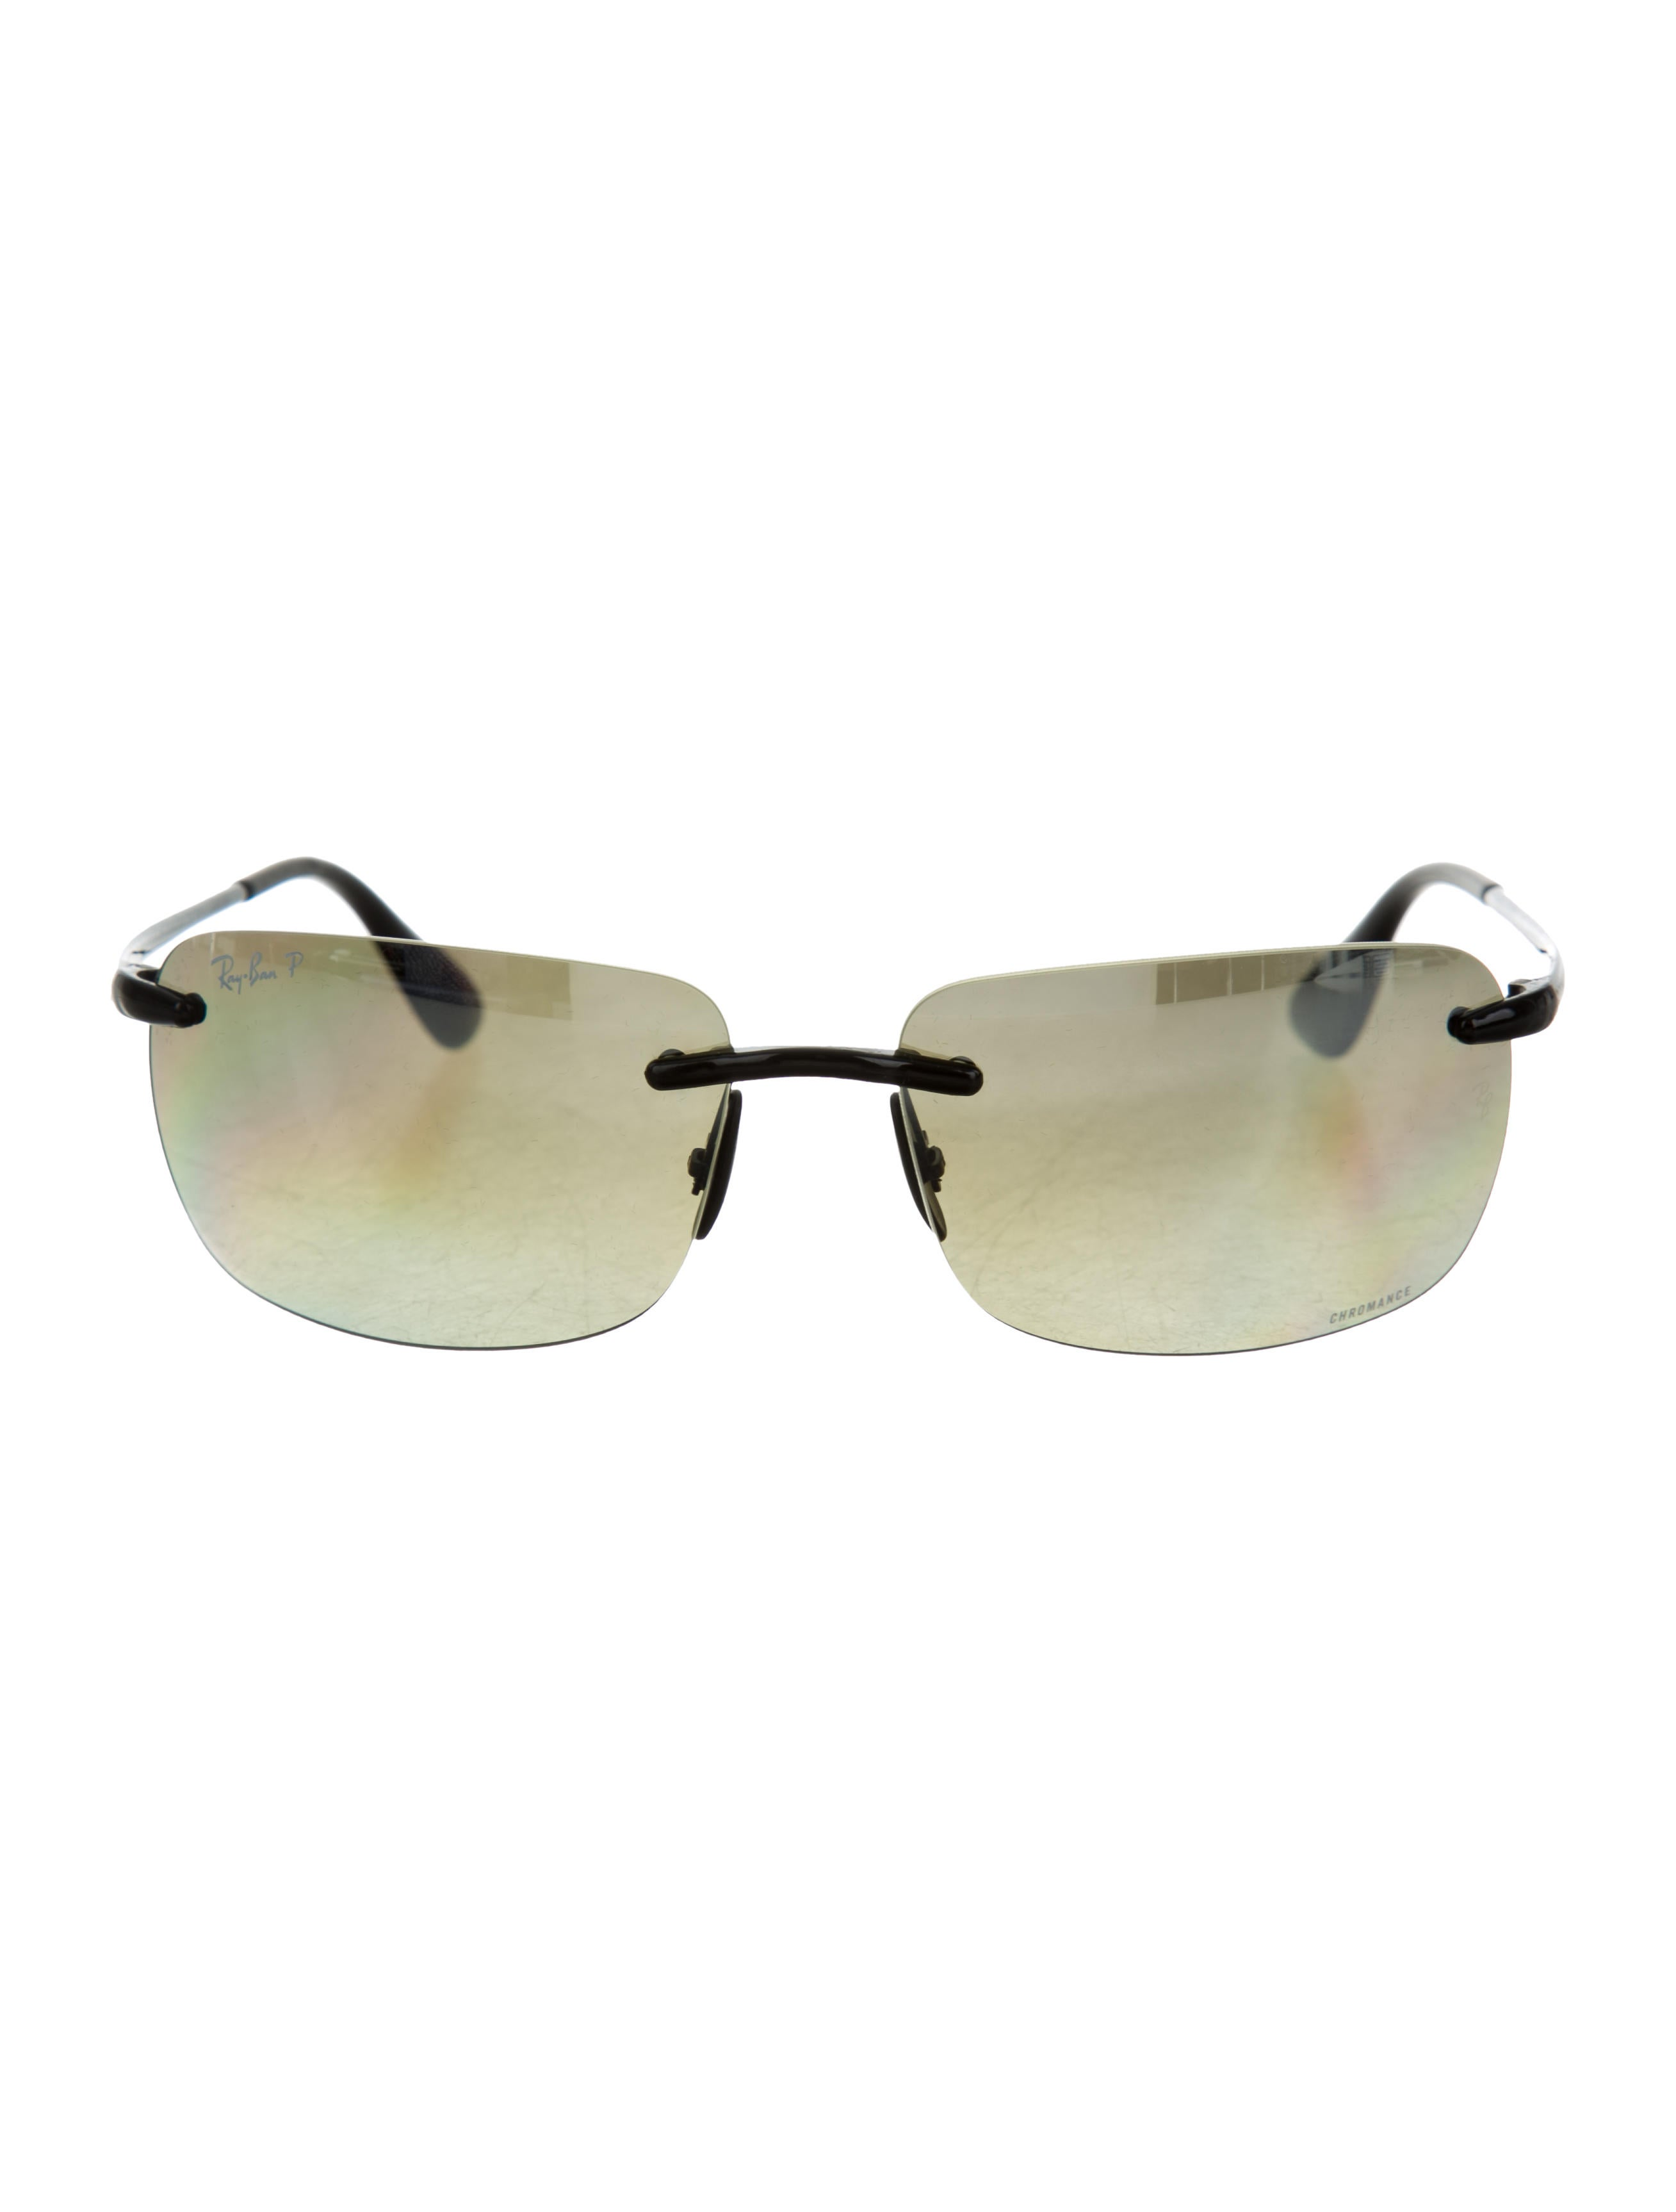 bc60bb6291 Ray Ban Rimless With Clip On Sunglasses